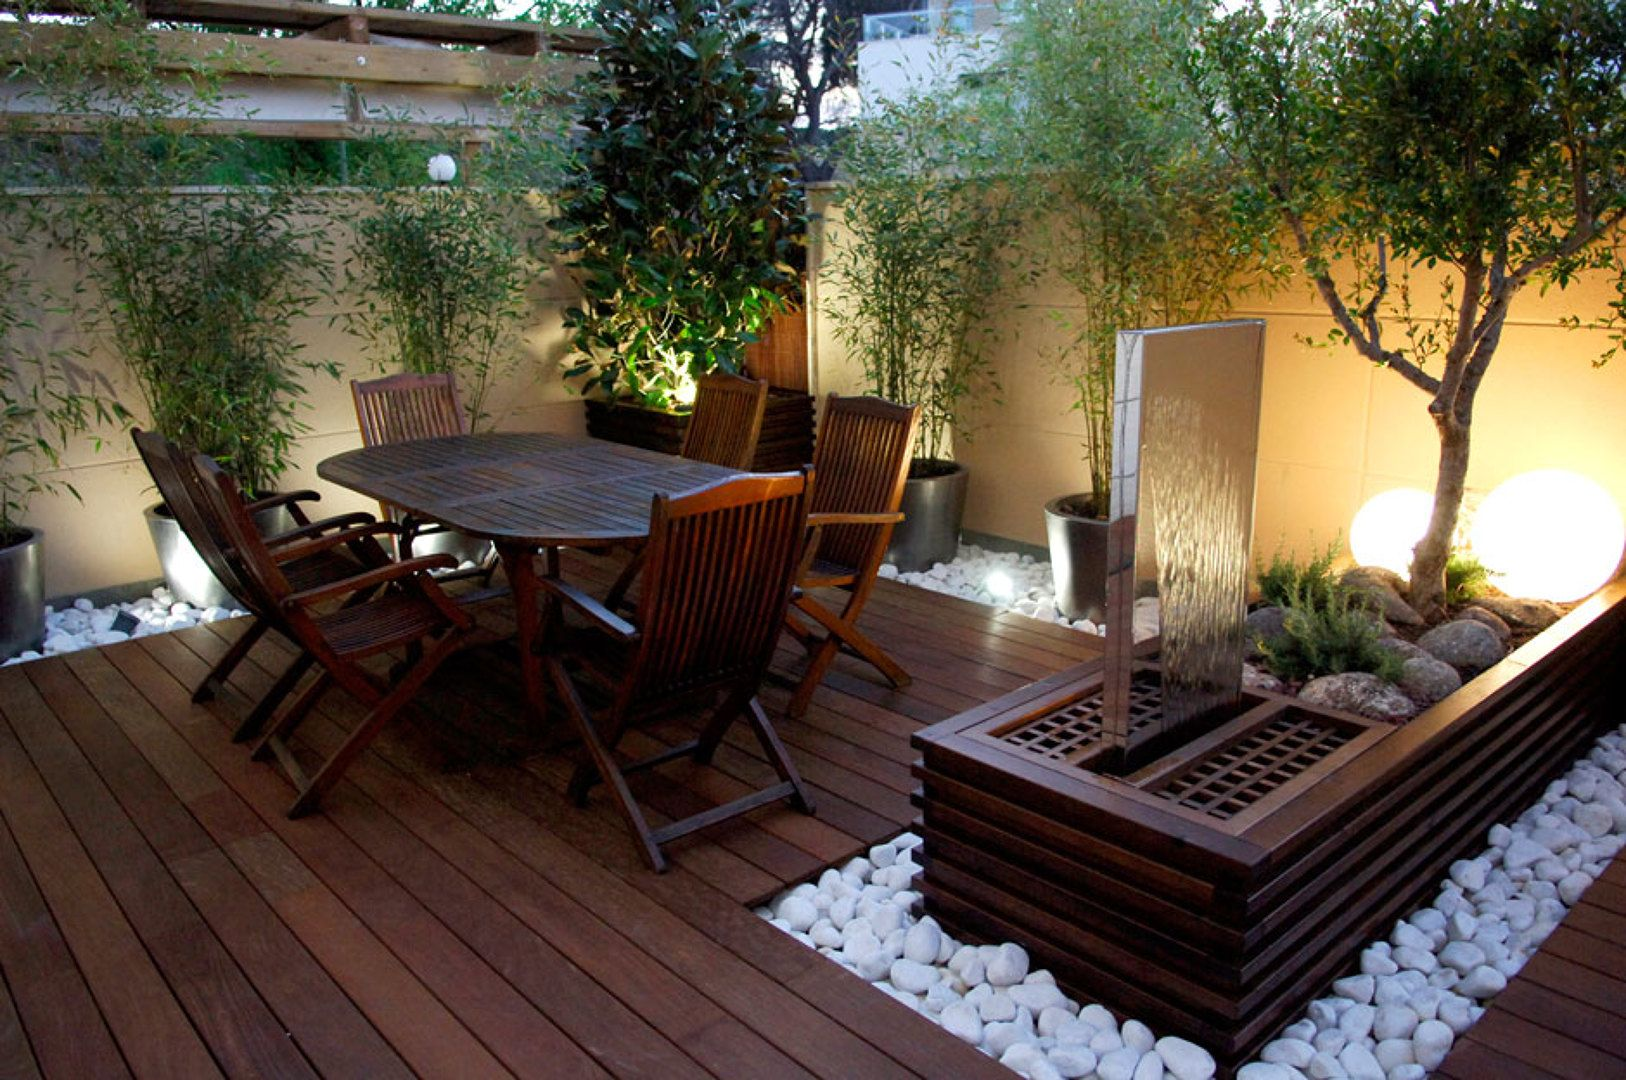 Iluminaci n terraza r stico industrial pinterest for Disenos de porches para casas